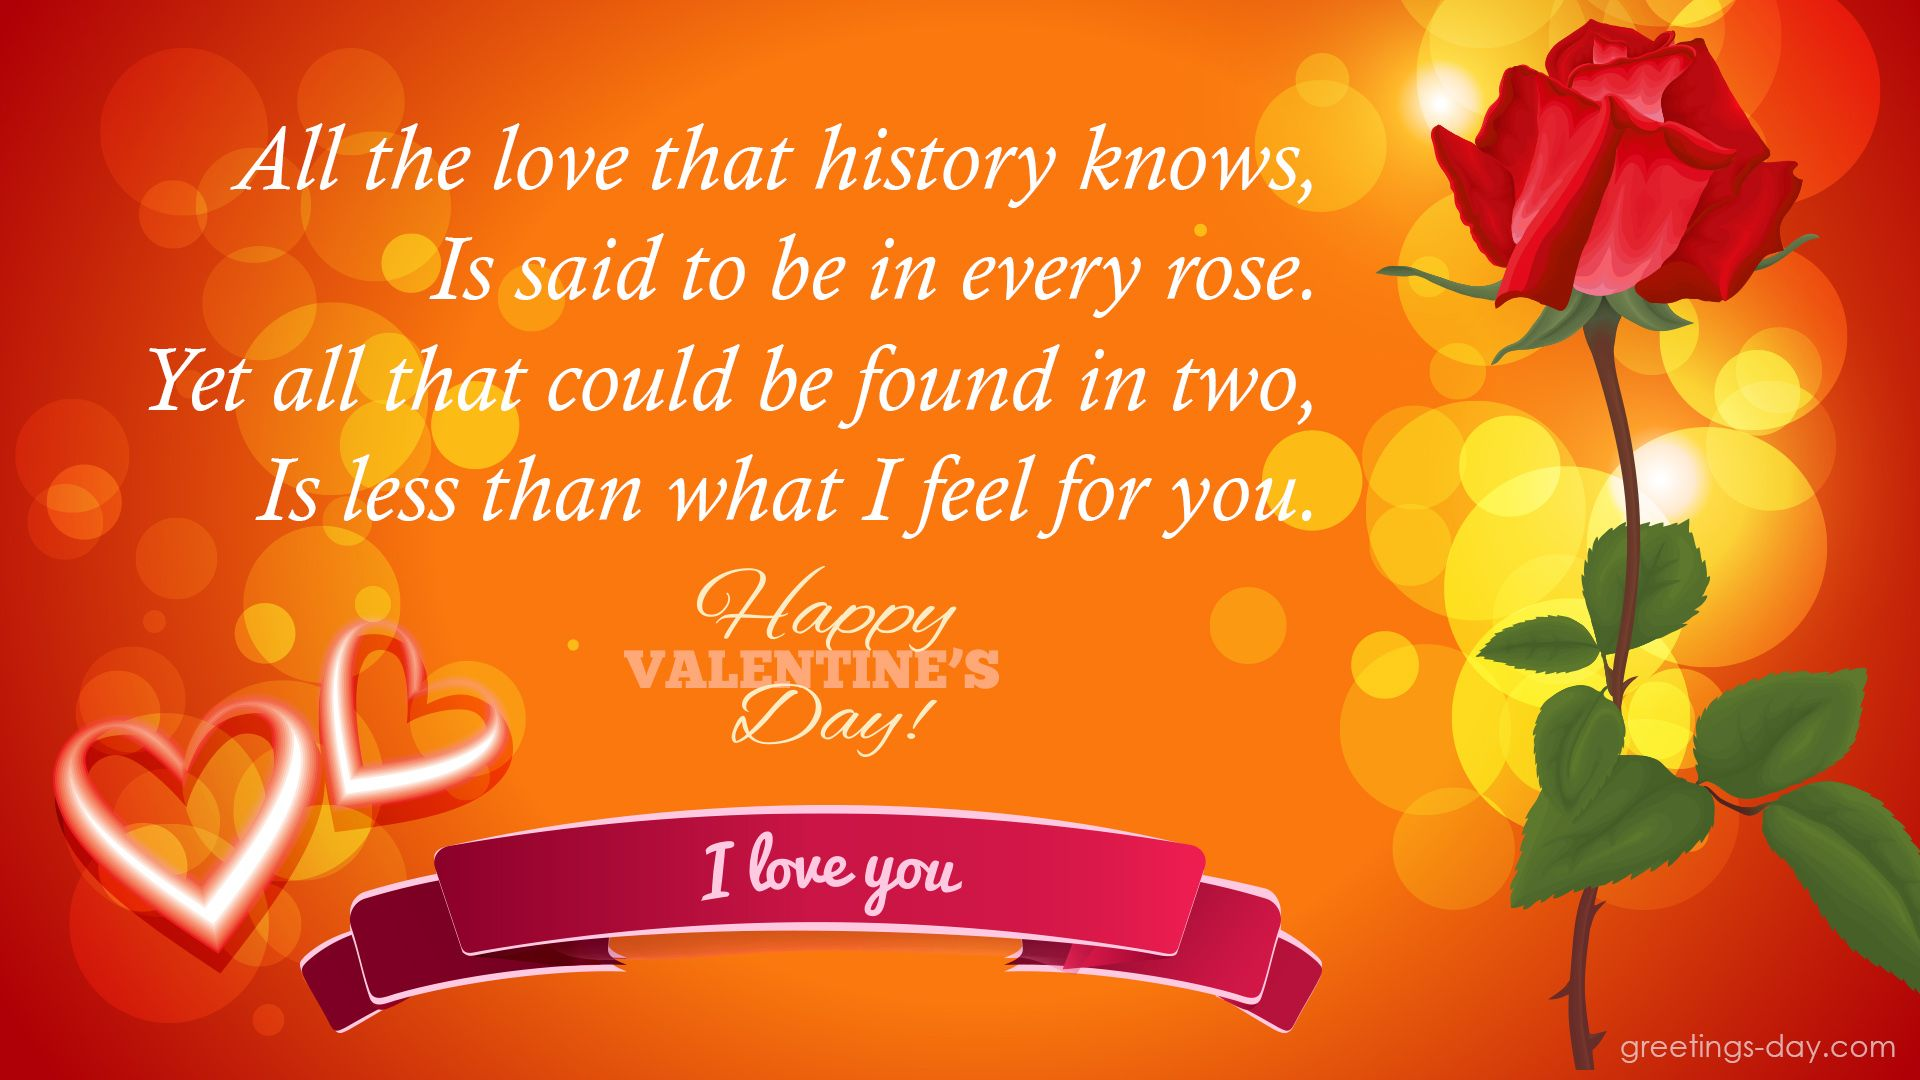 Cute Message Image Send To Your Valentine Quotes For Her